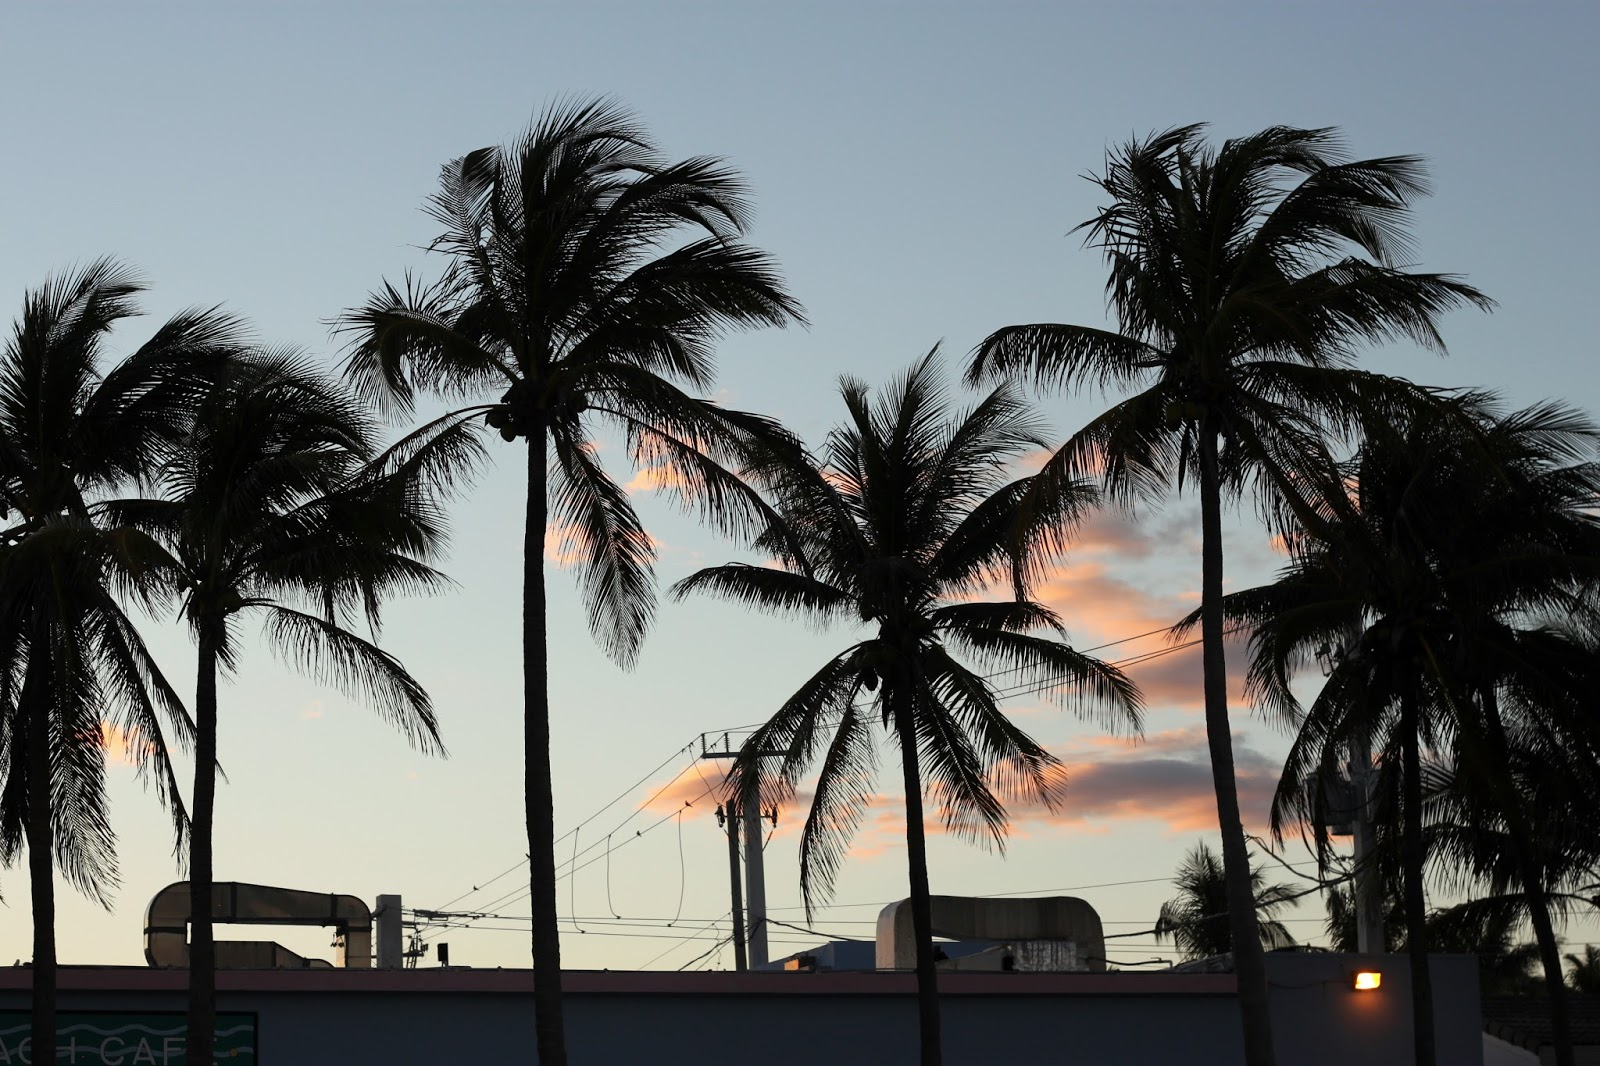 First Impressions - Fort Lauderdale, Florida